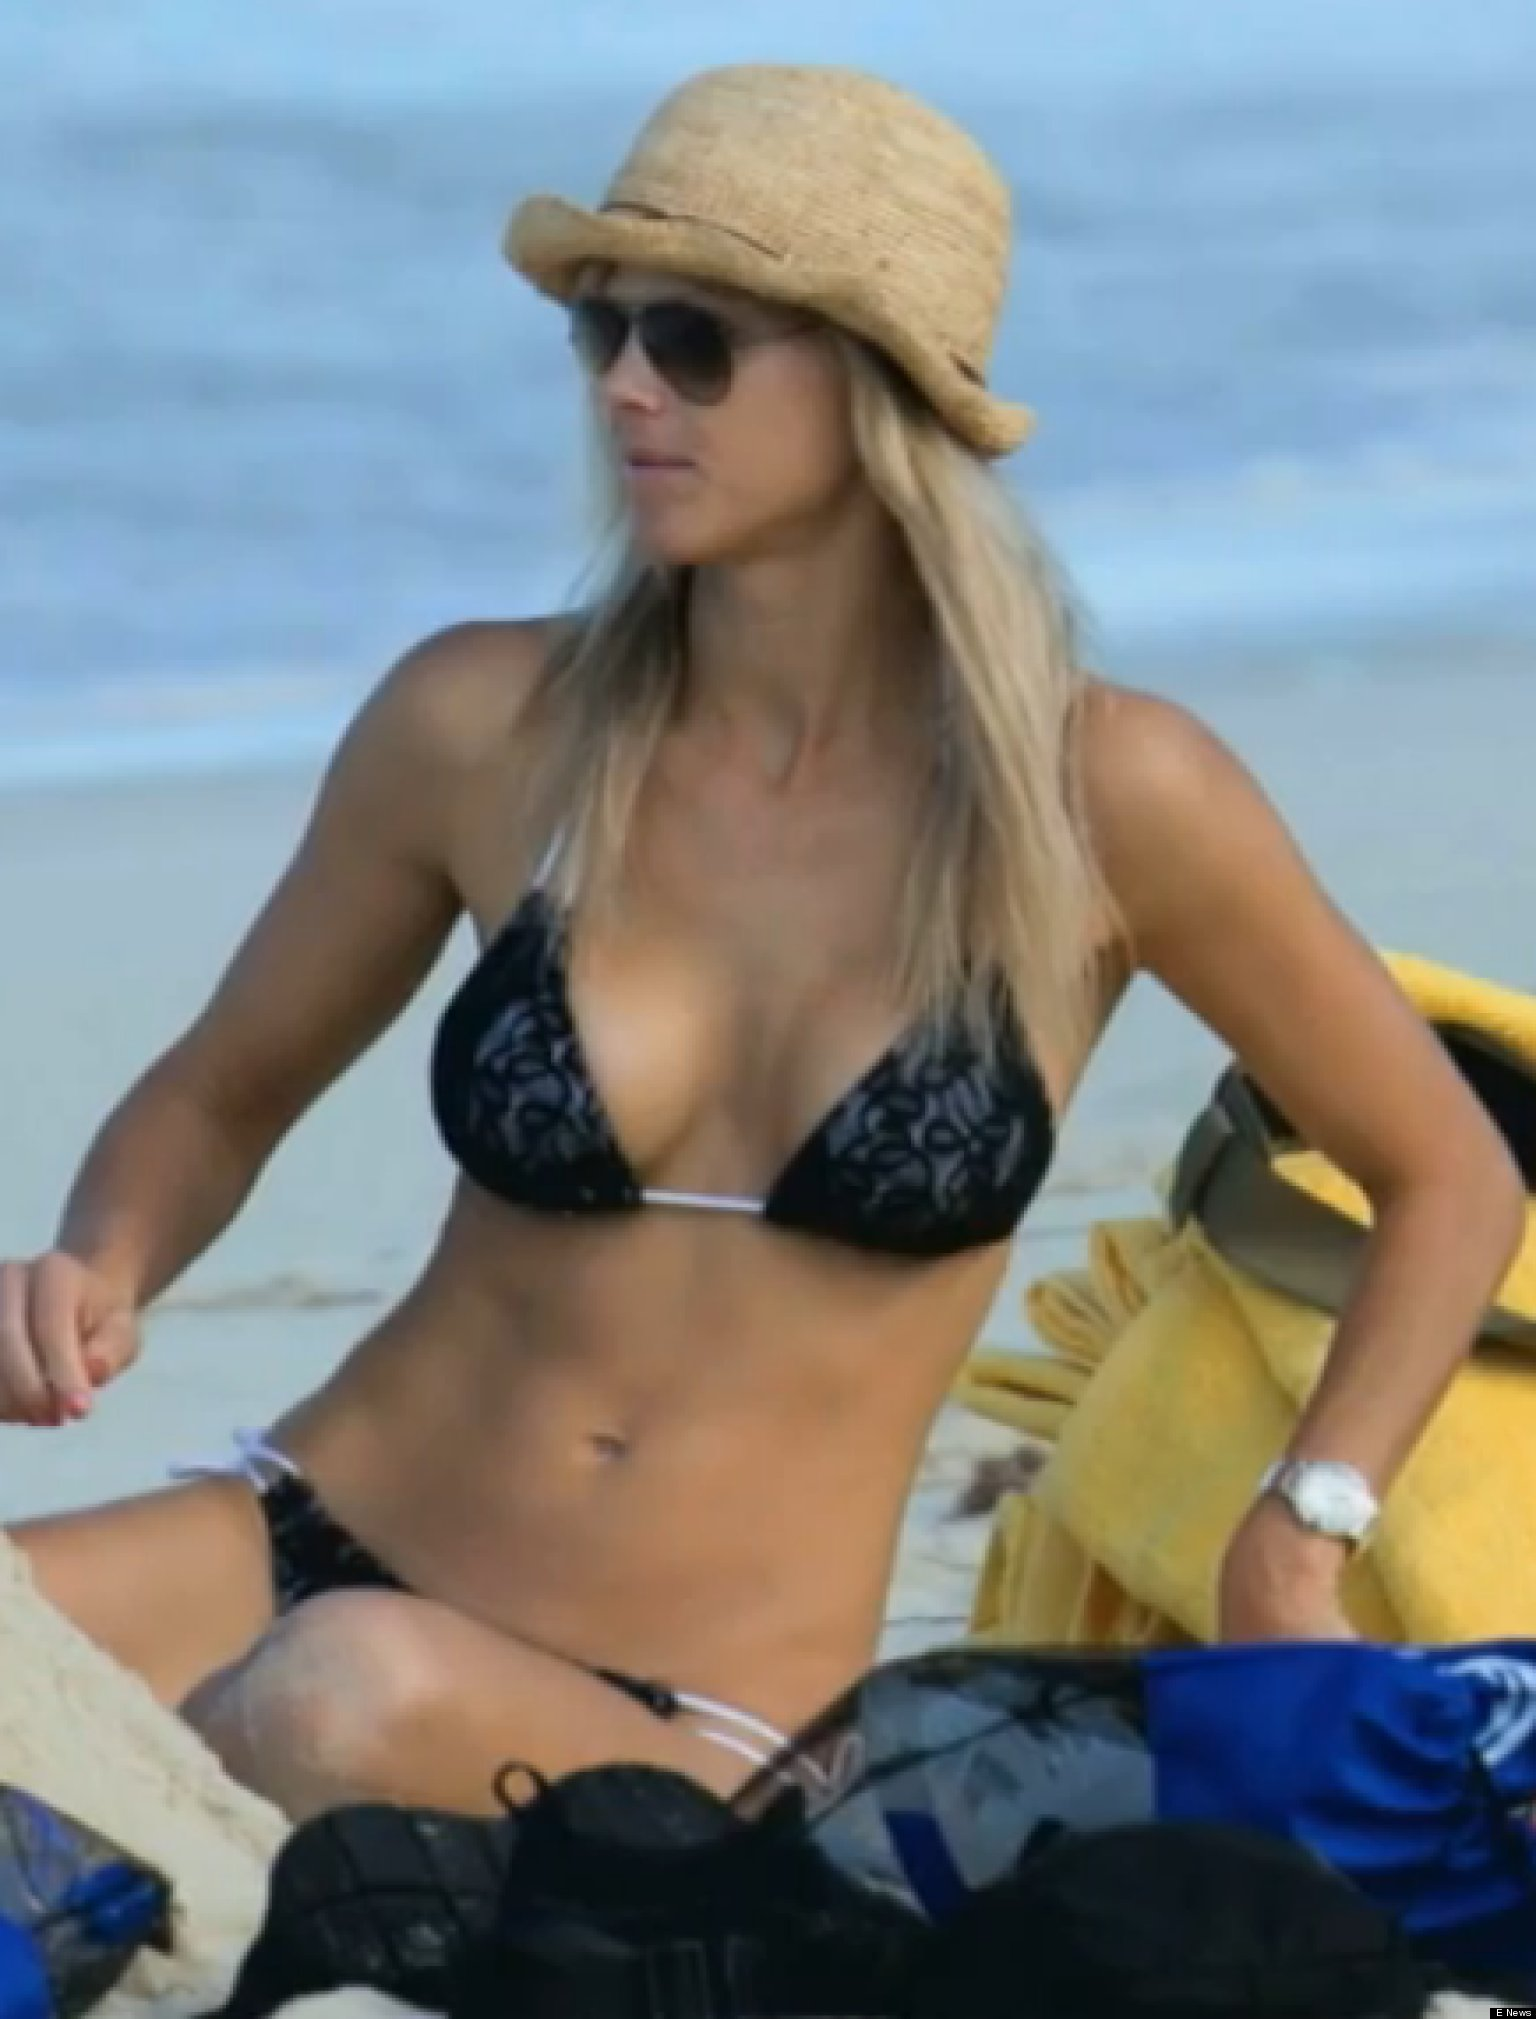 elin nordegren shows off her  u0026 39 revenge body u0026 39  on bahamas